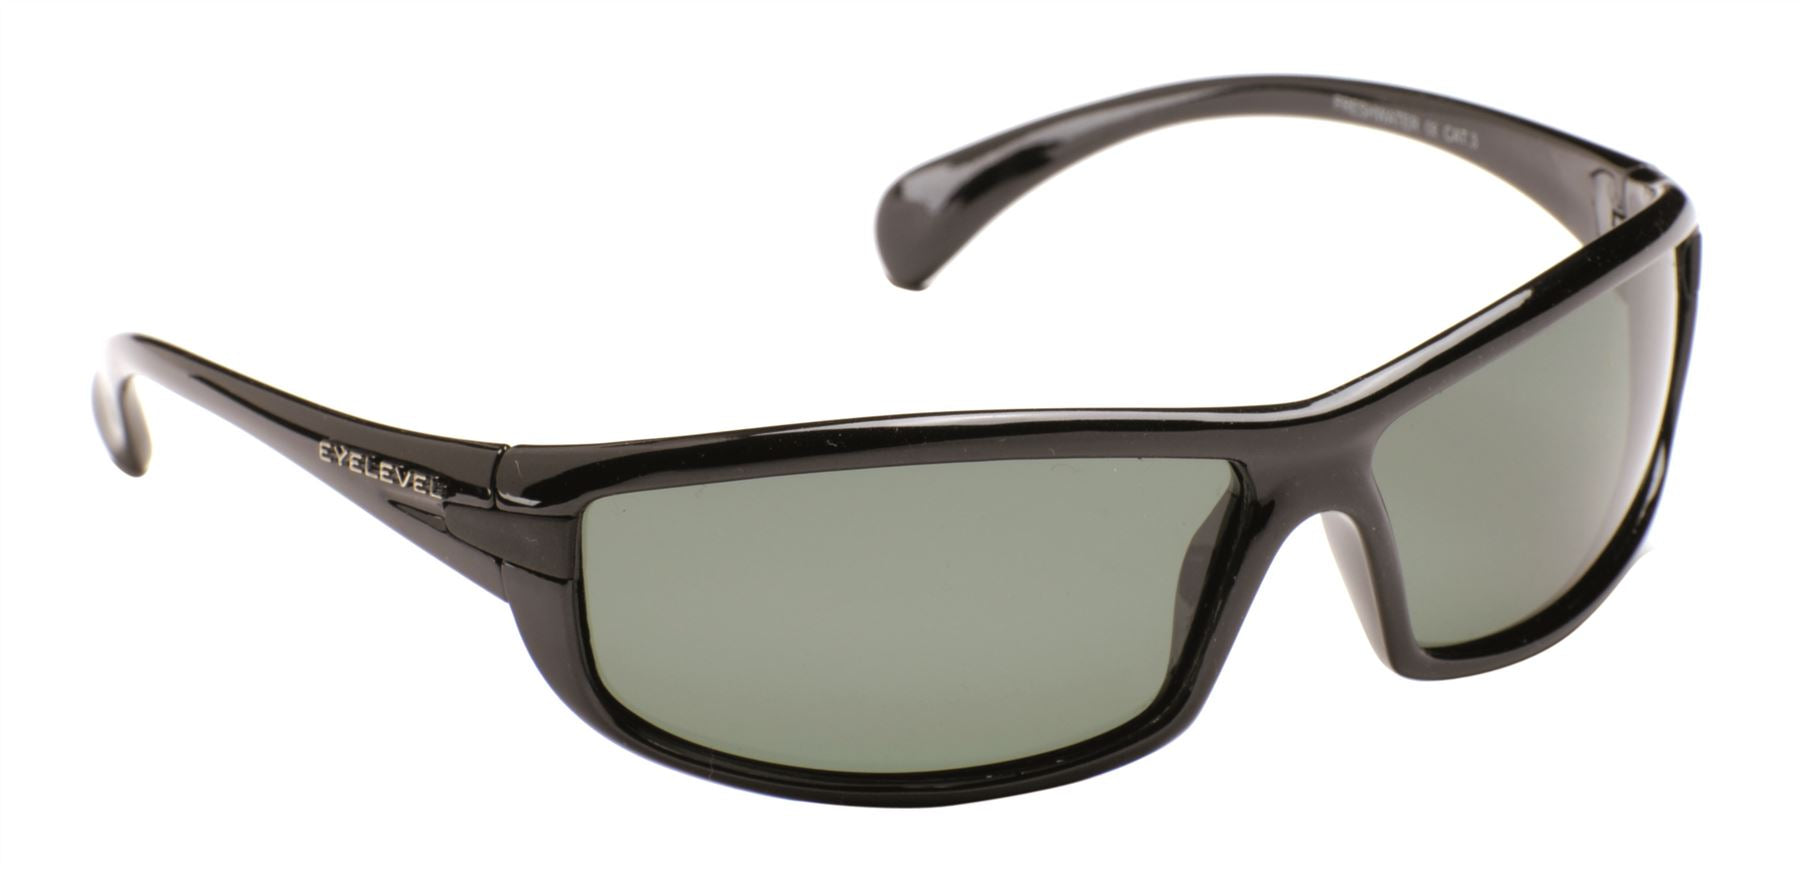 Freshwater Sunglasses - Grey Lens